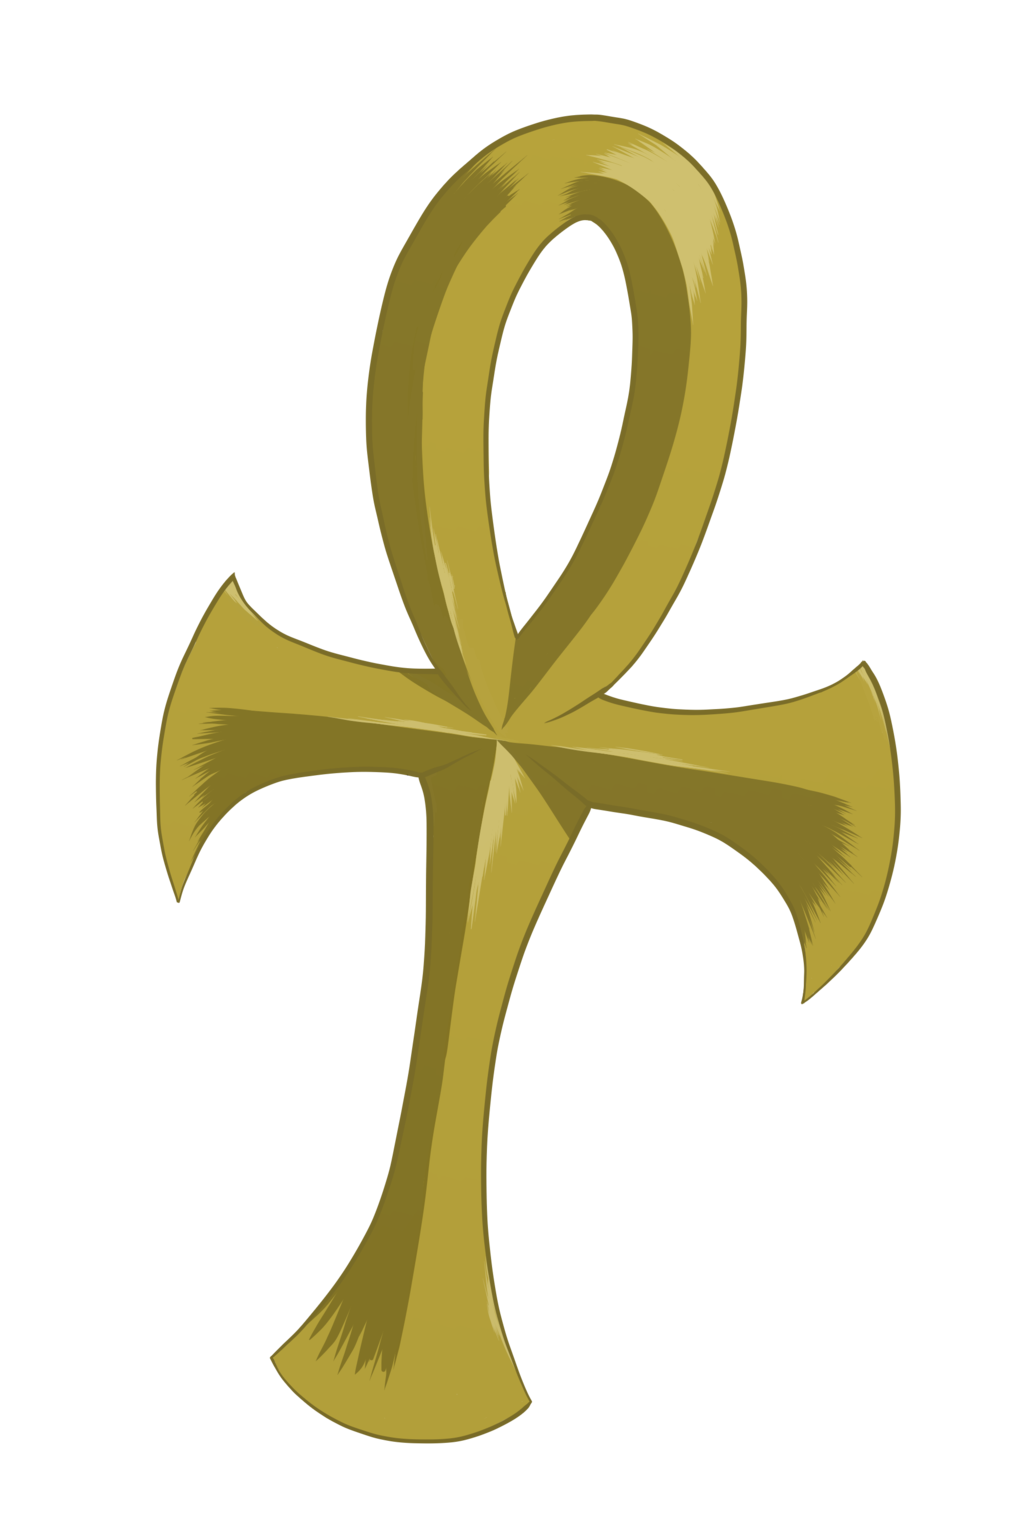 By ixbalam on deviantart. Ankh transparent banner royalty free stock